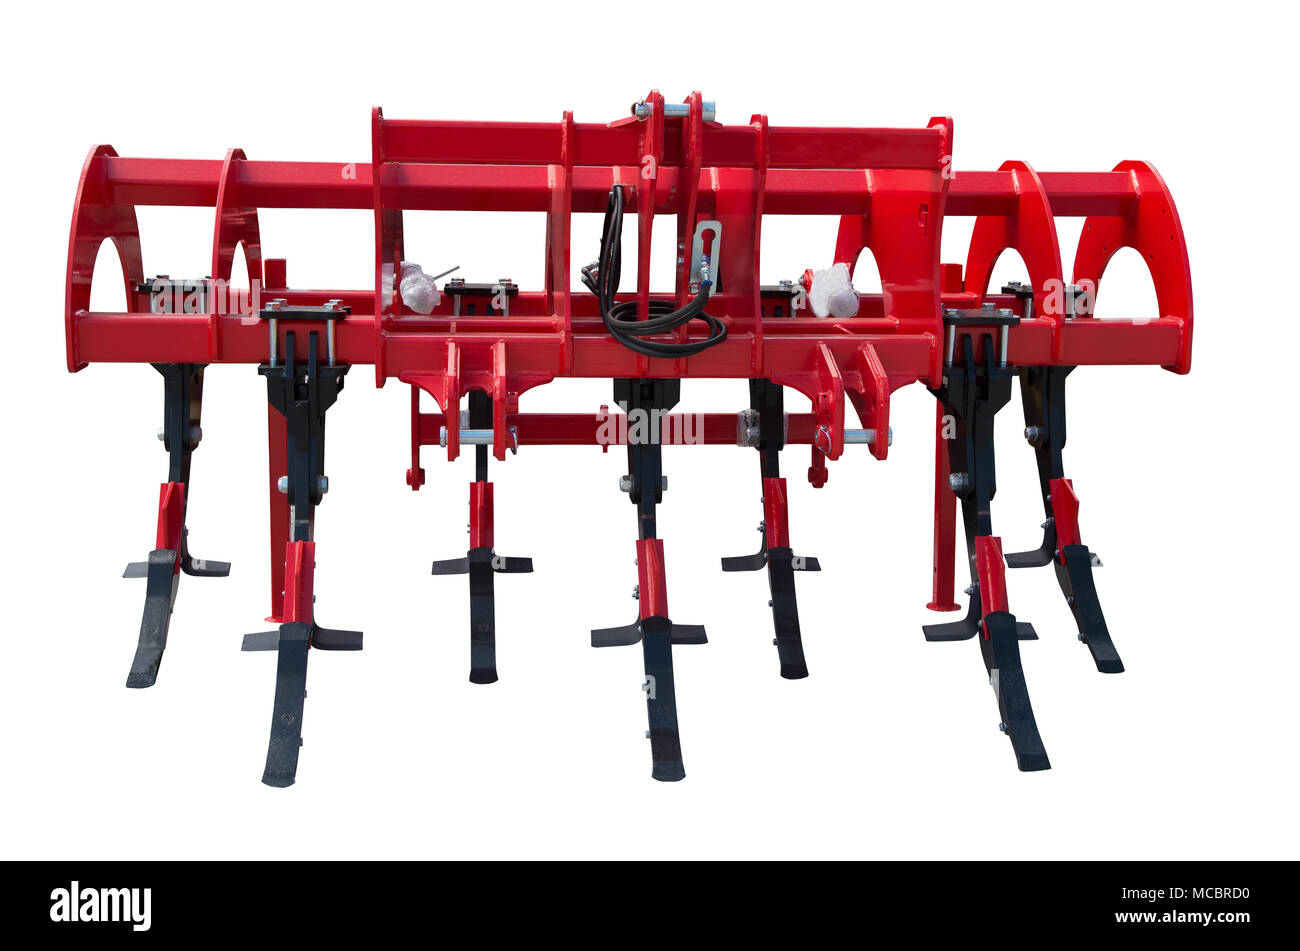 Agricultural plow isolated on white background. Plow for deep plowing. Subsoiler or flat lifter - Stock Image